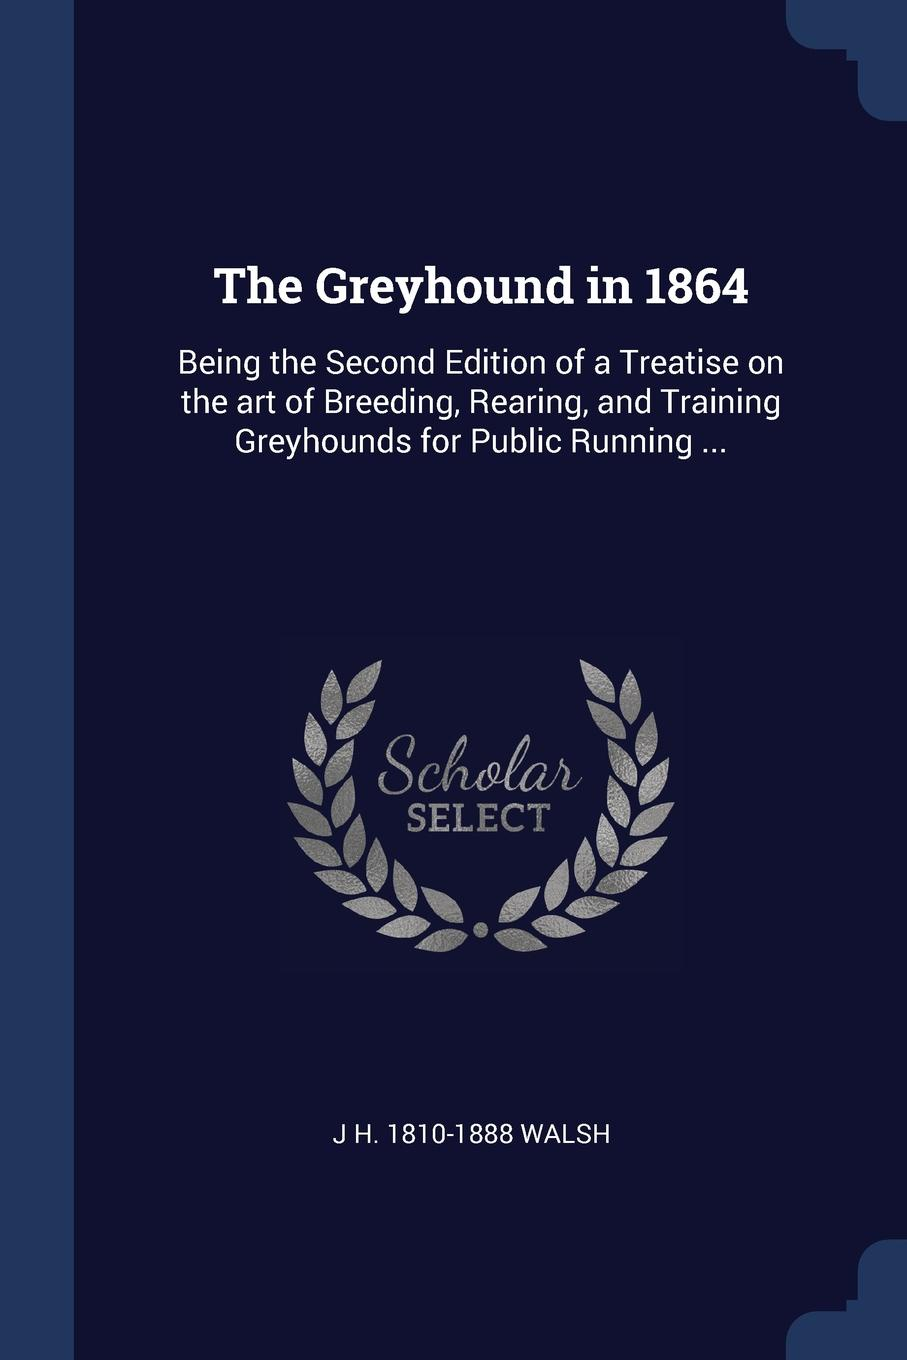 The Greyhound in 1864. Being the Second Edition of a Treatise on the art of Breeding, Rearing, and Training Greyhounds for Public Running .... J H. 1810-1888 Walsh